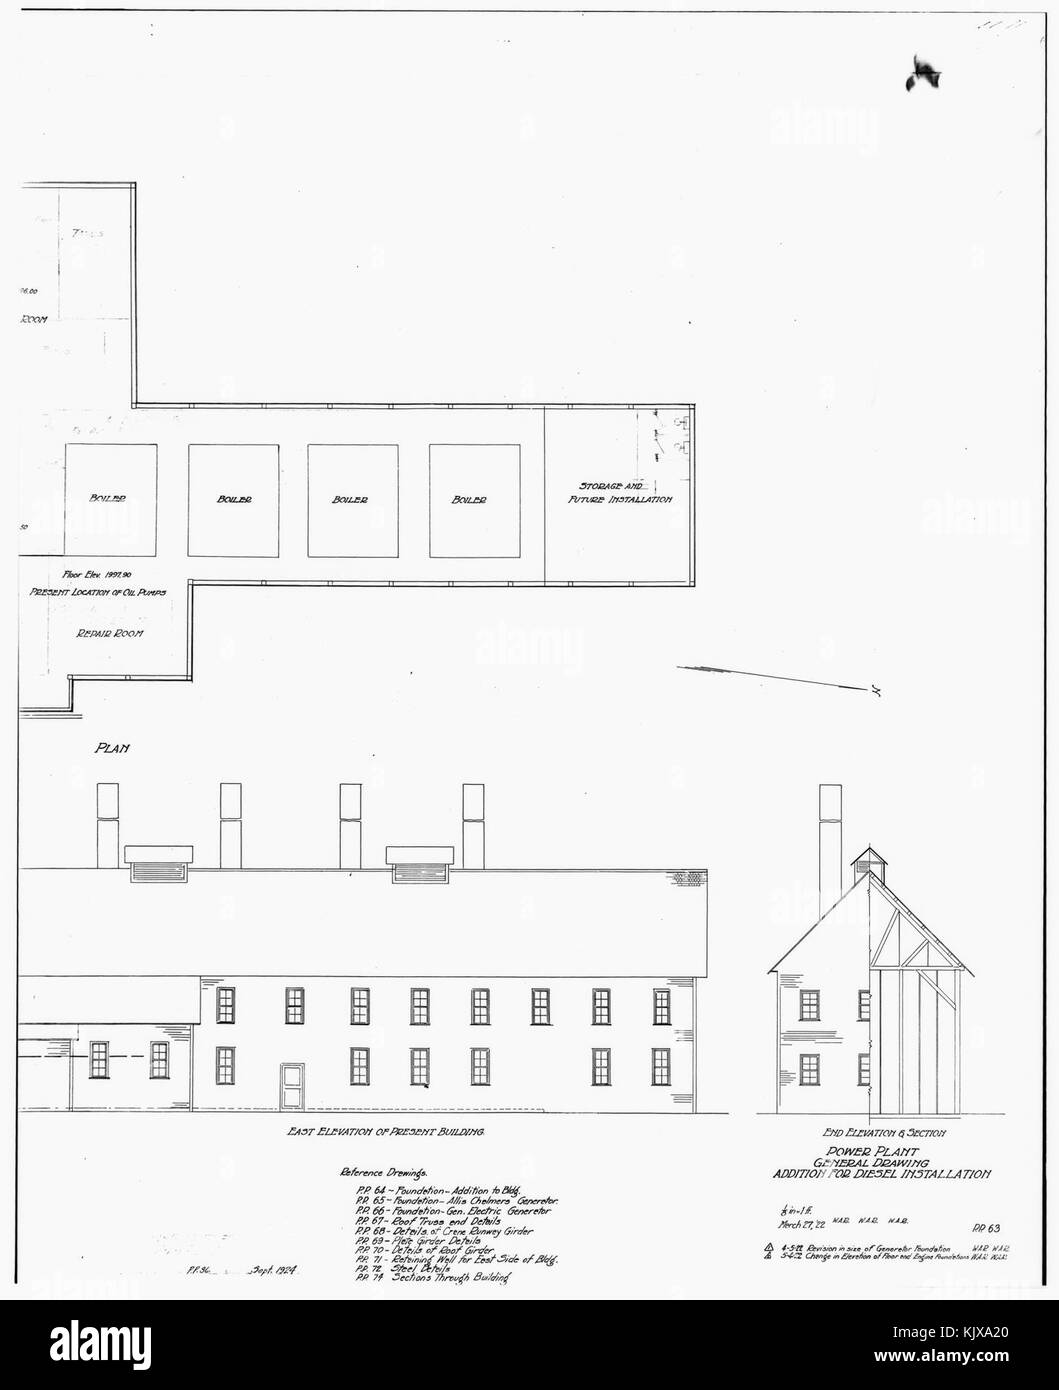 Kennecott Copper Black And White Stock Photos Images Alamy Diesel Power Plant Diagram Photocopy Of Drawing General Addition For Installation